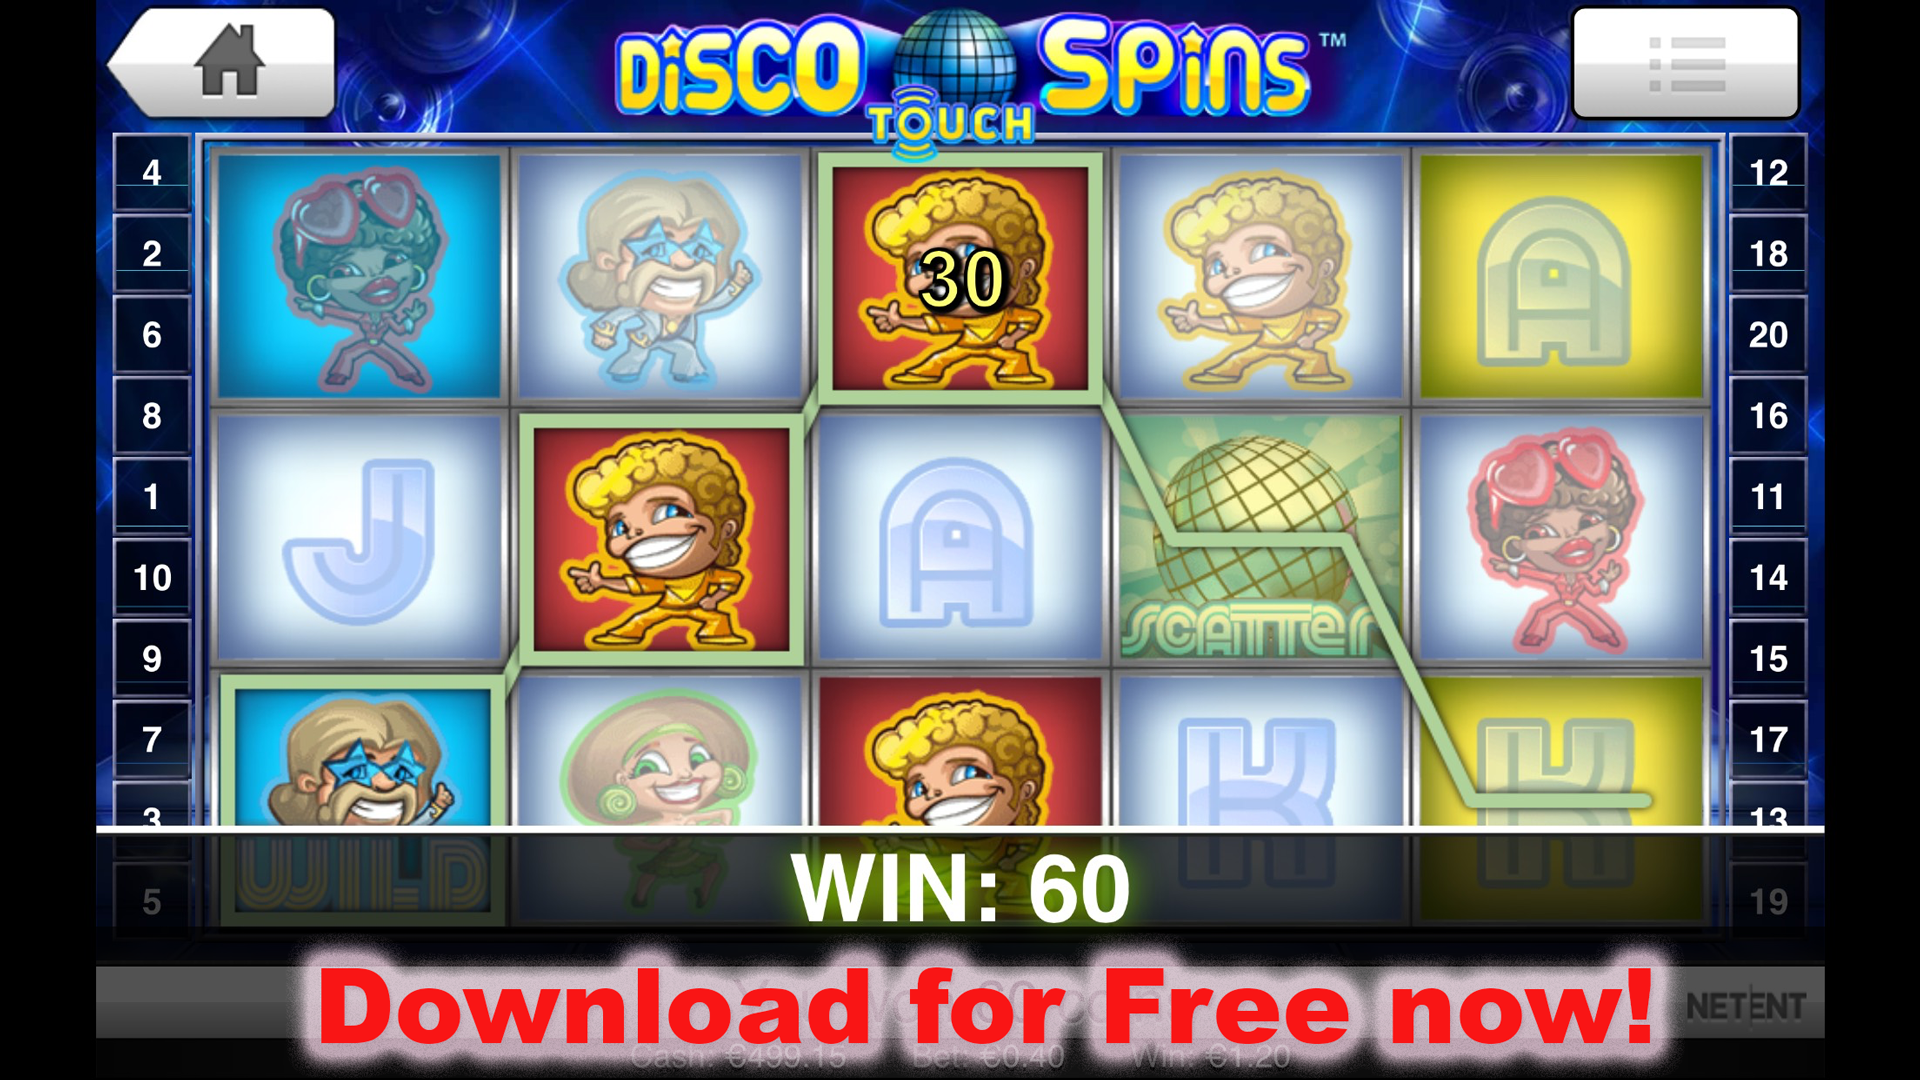 Disco Spins - Free Disco Slot Machine Online